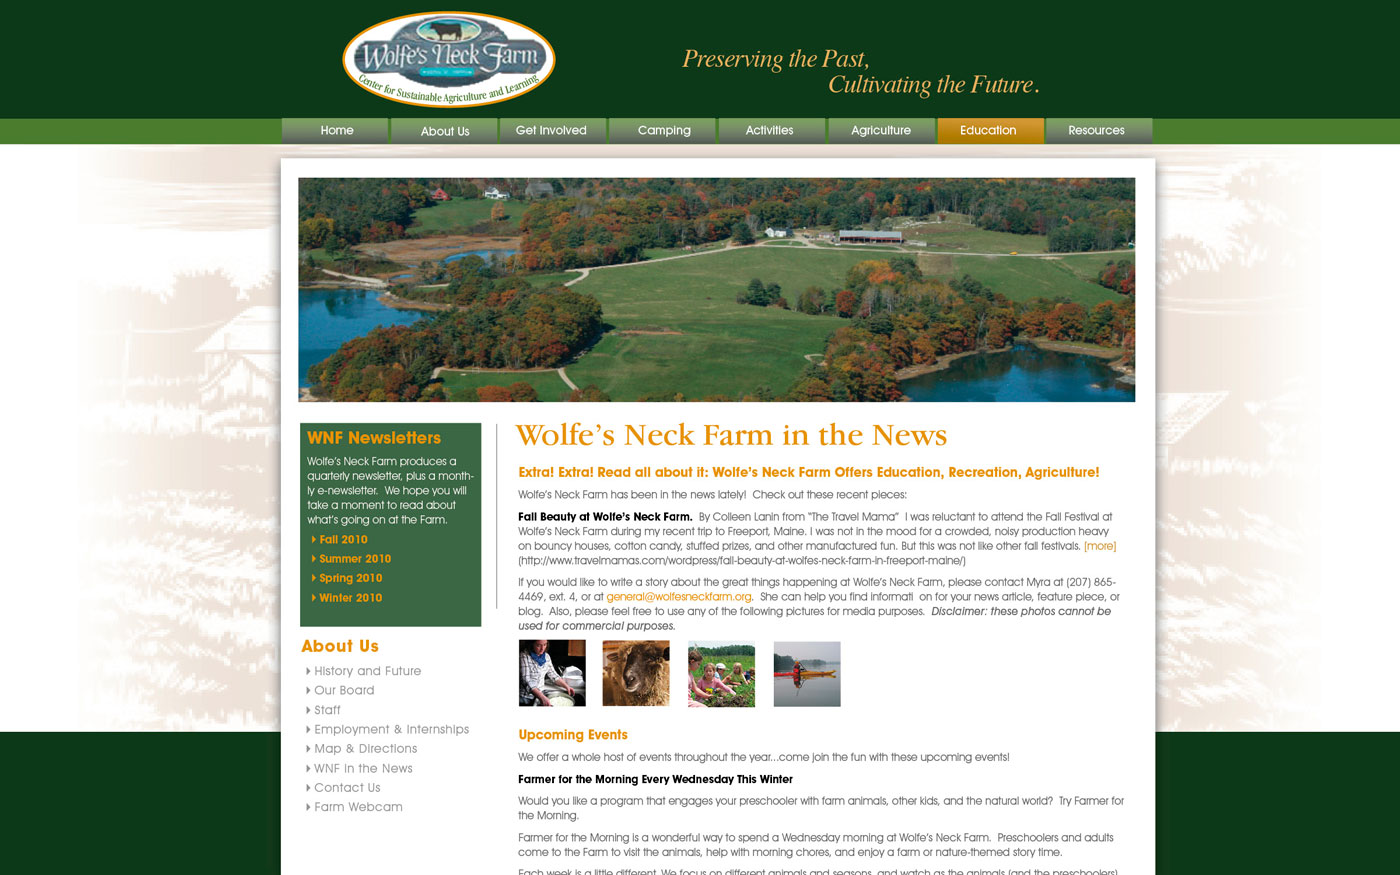 Wolfes Neck Farm website news page